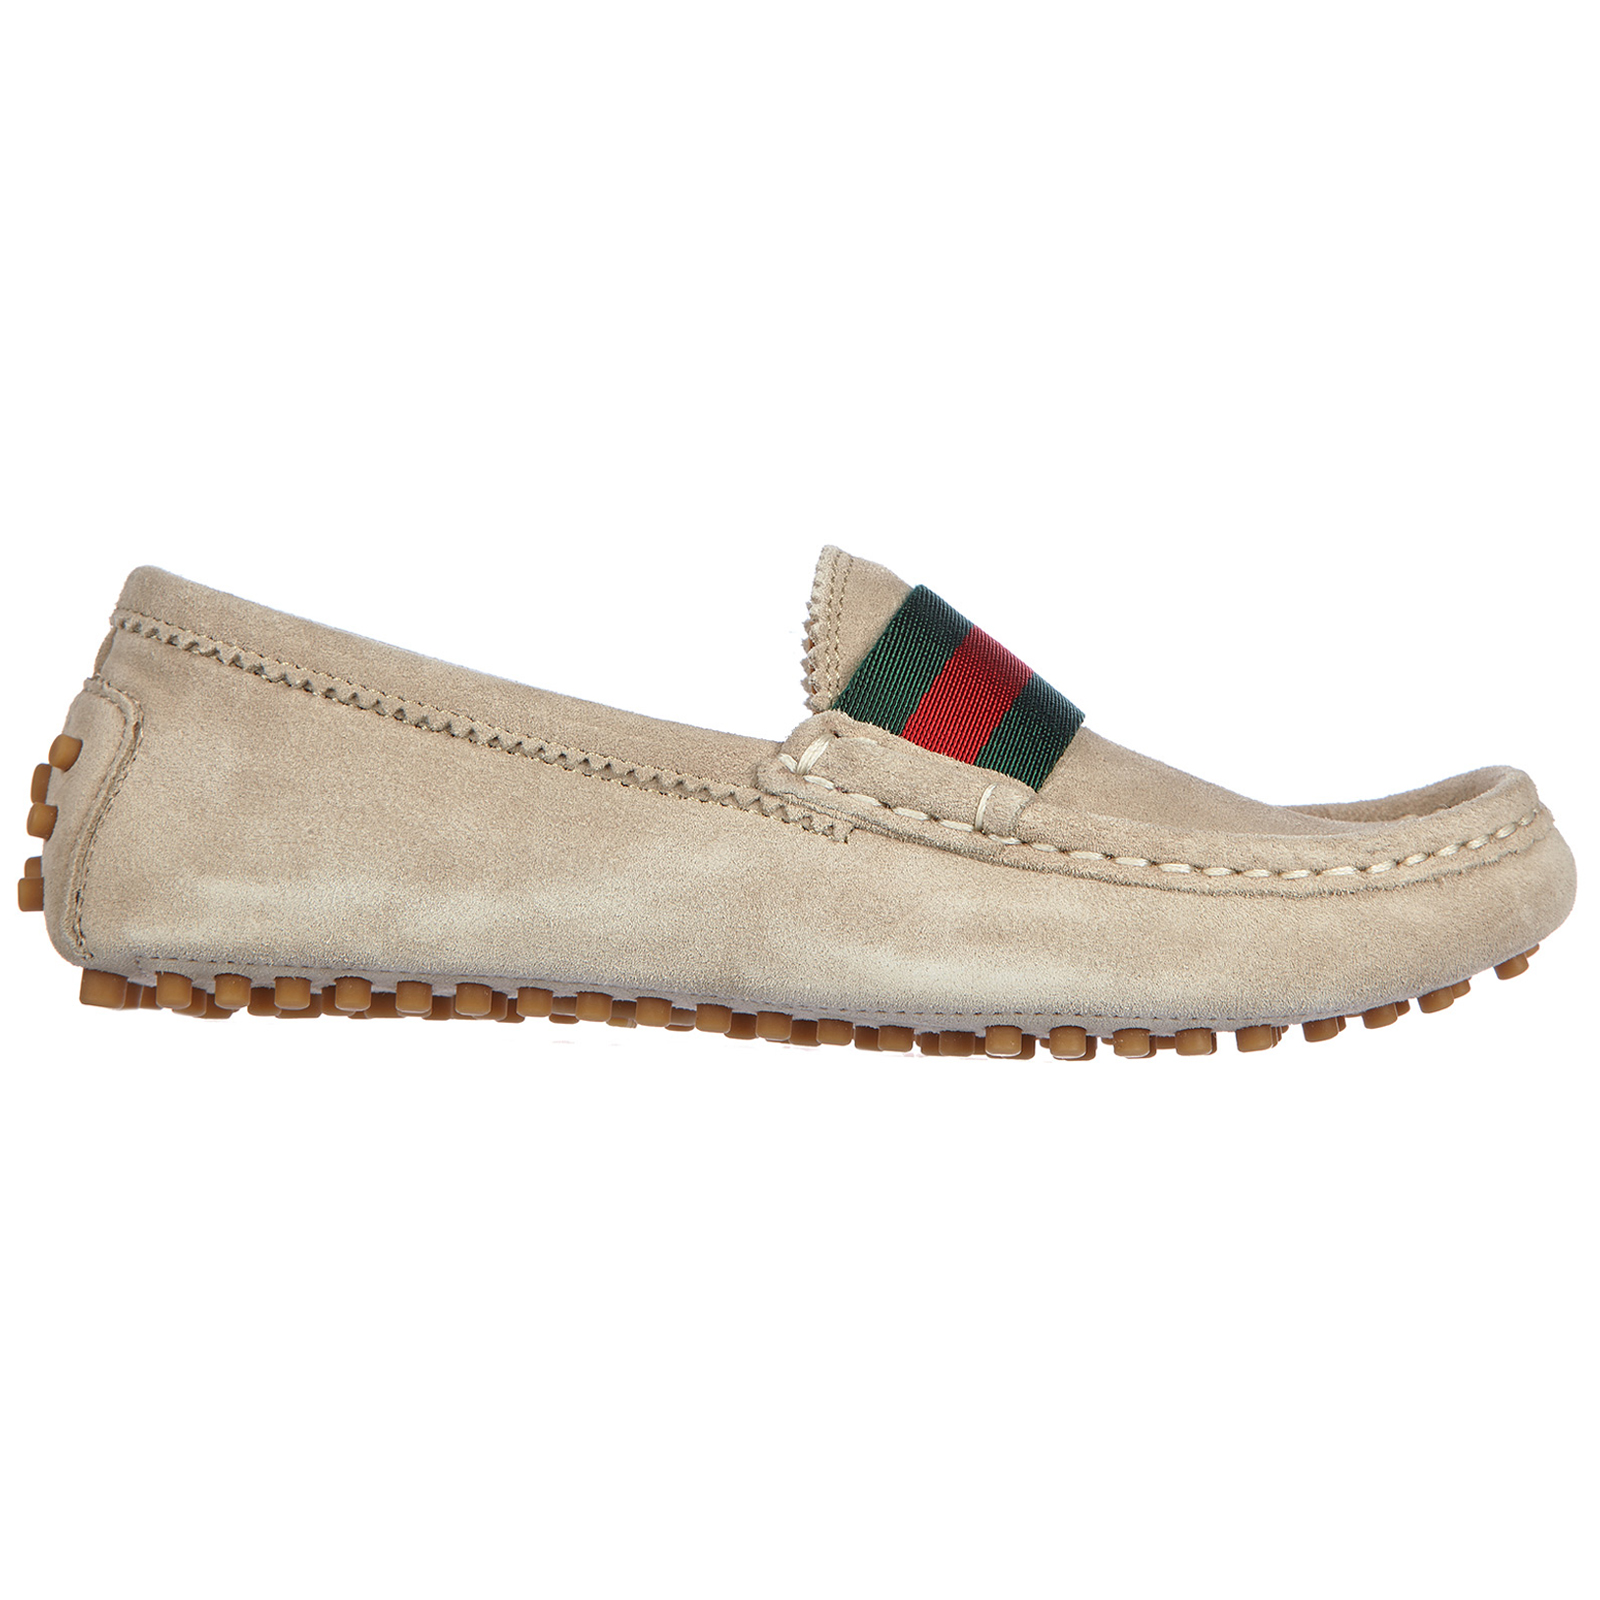 dcae342f7c9 Gucci Boys shoes child loafers moccassins suede leather